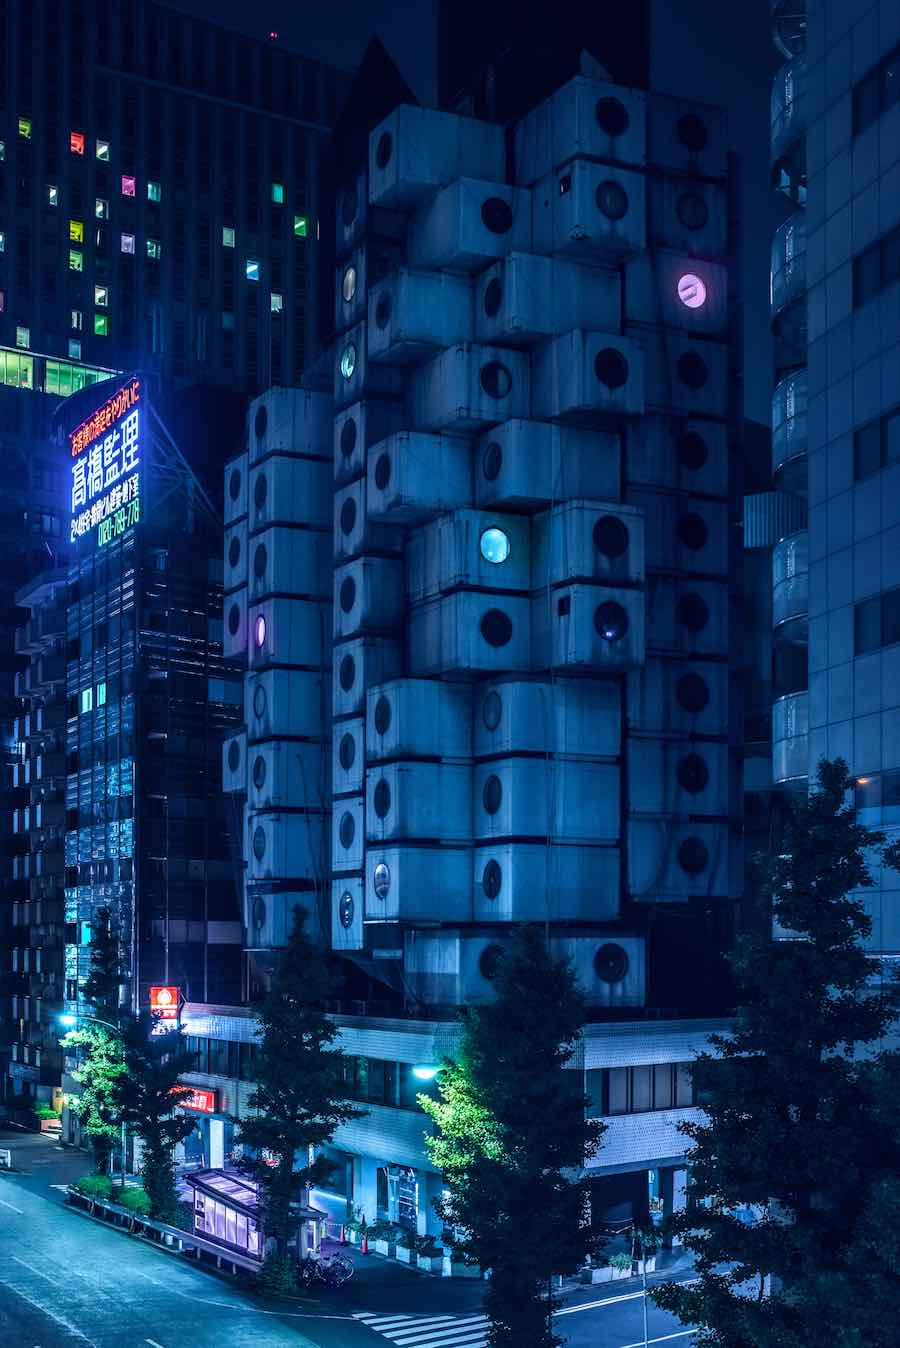 Nagakin Capsule Tower. Tokyo Blade Runner-style nightscapes - Photo by Tom Blachford